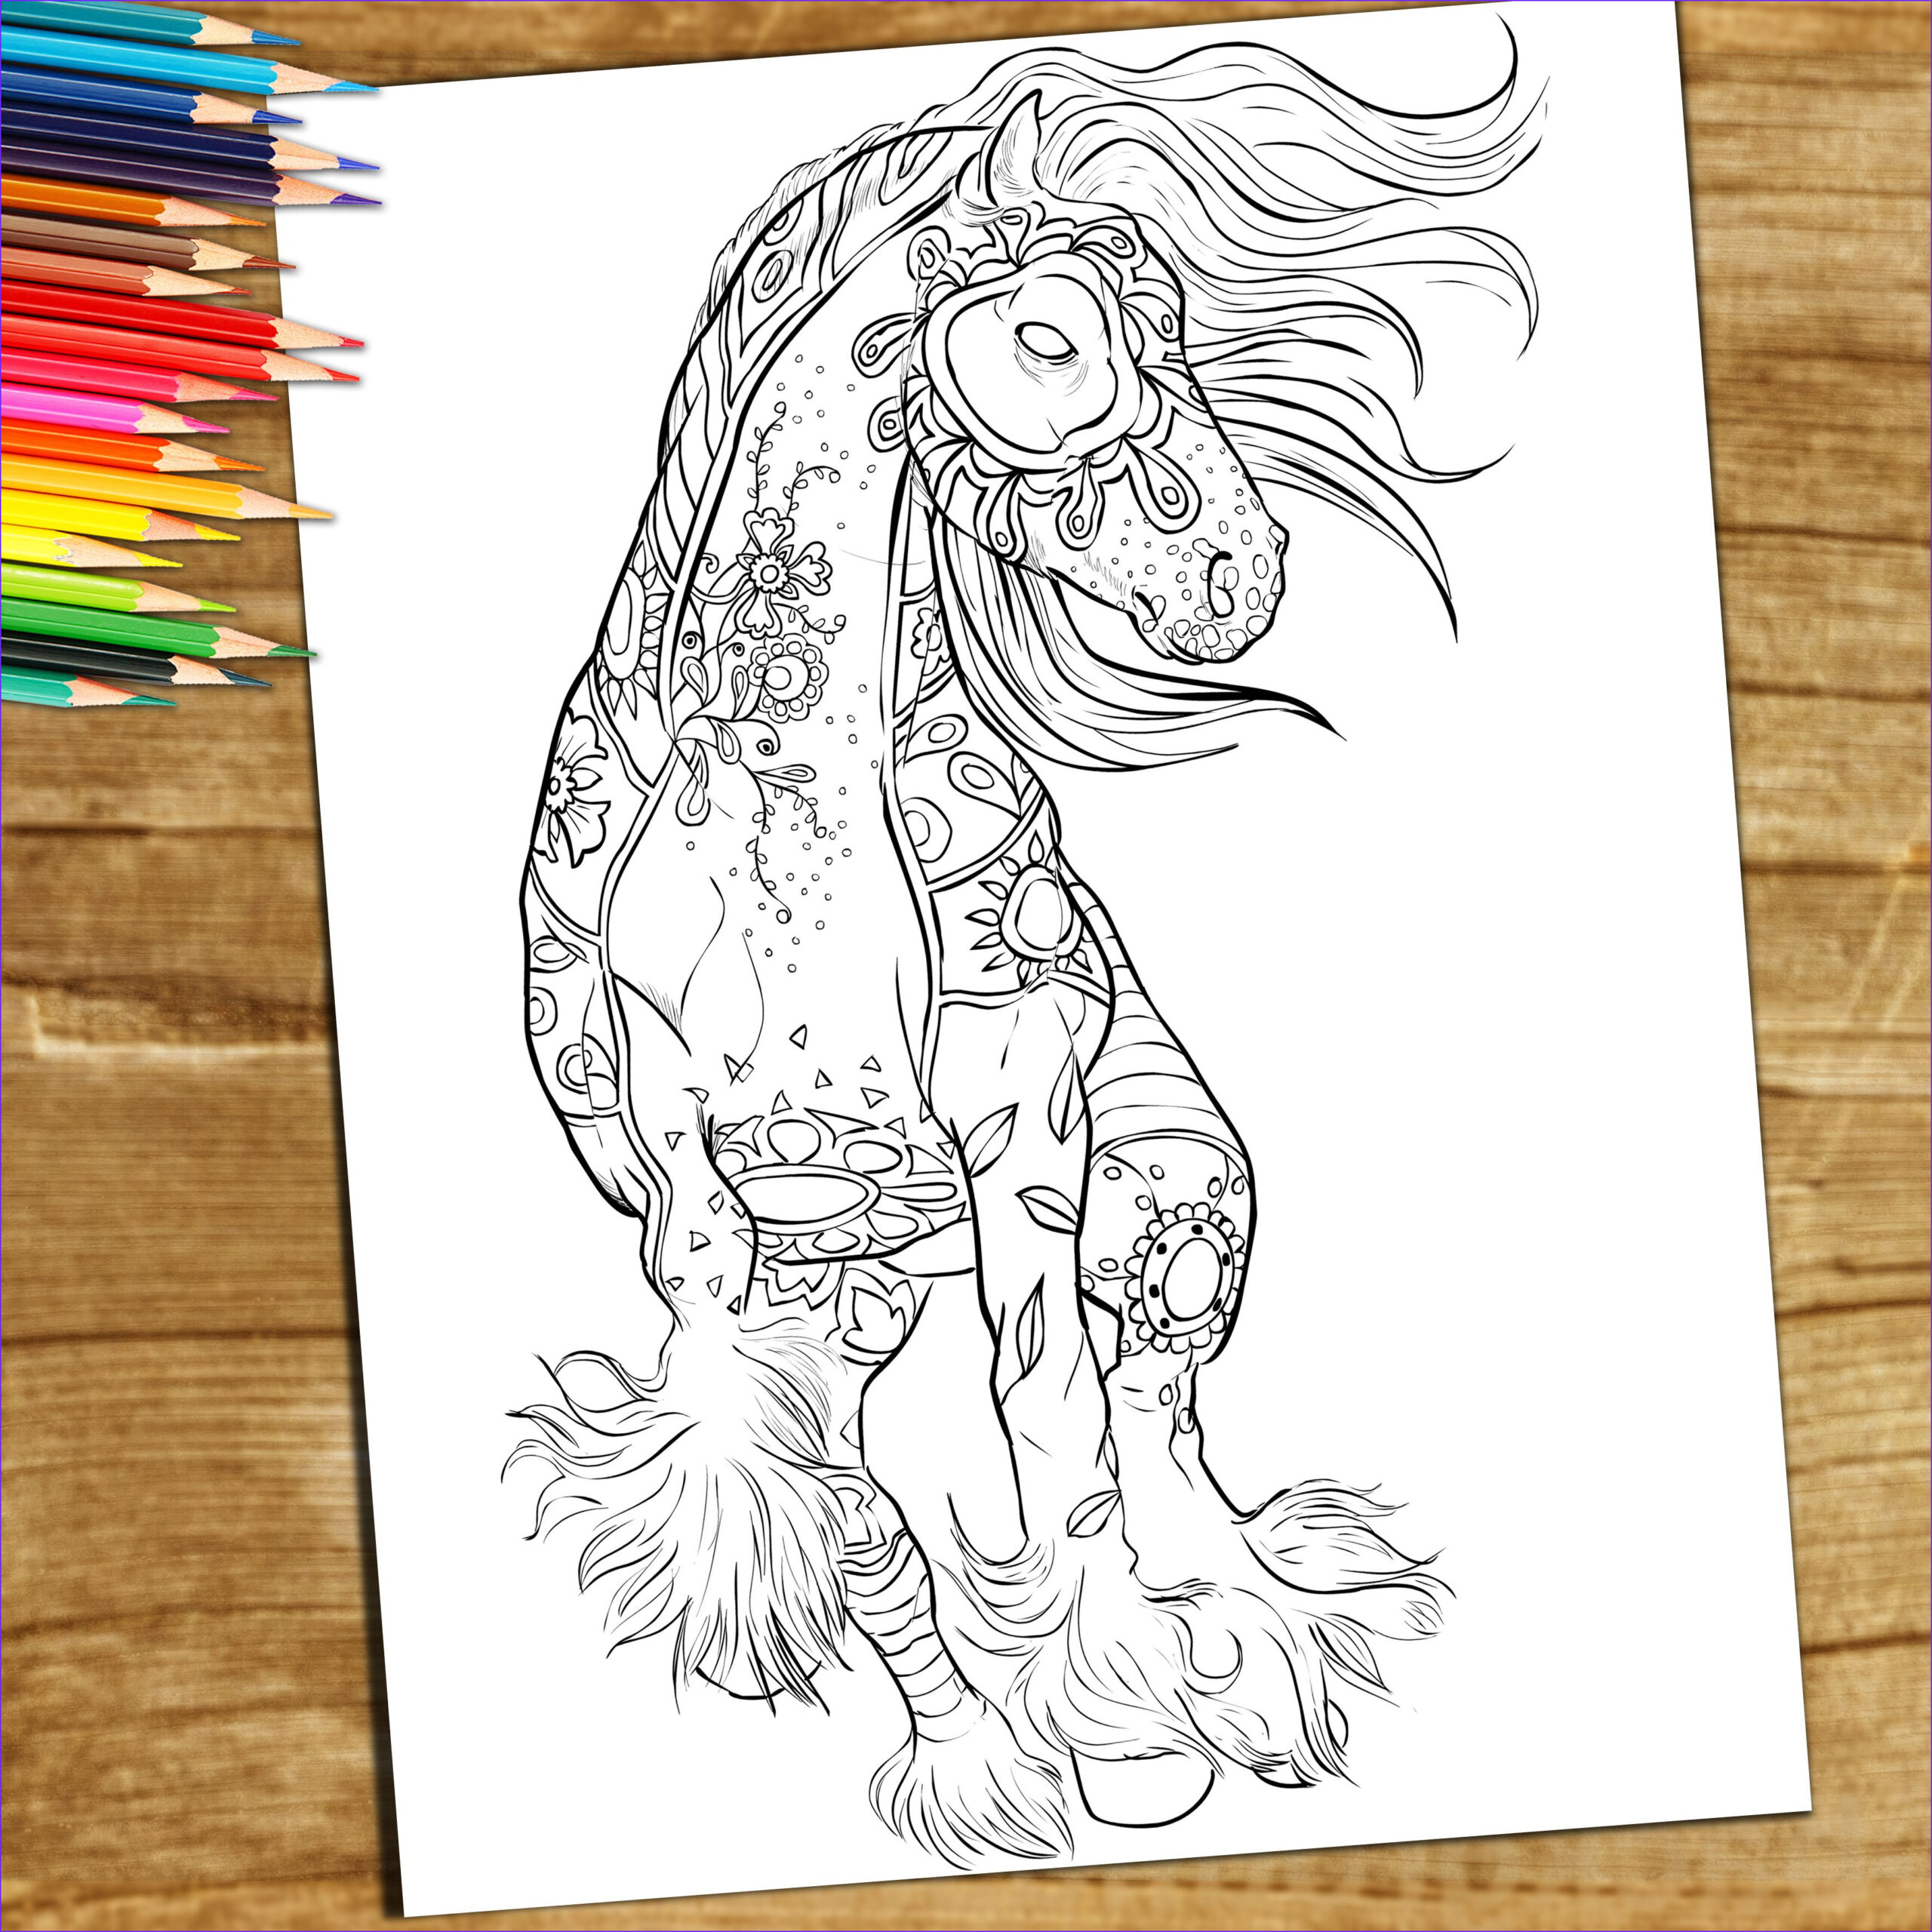 Zentangle Coloring Books Beautiful Images A Zentangle Coloring Page From the Adult Colouring Book